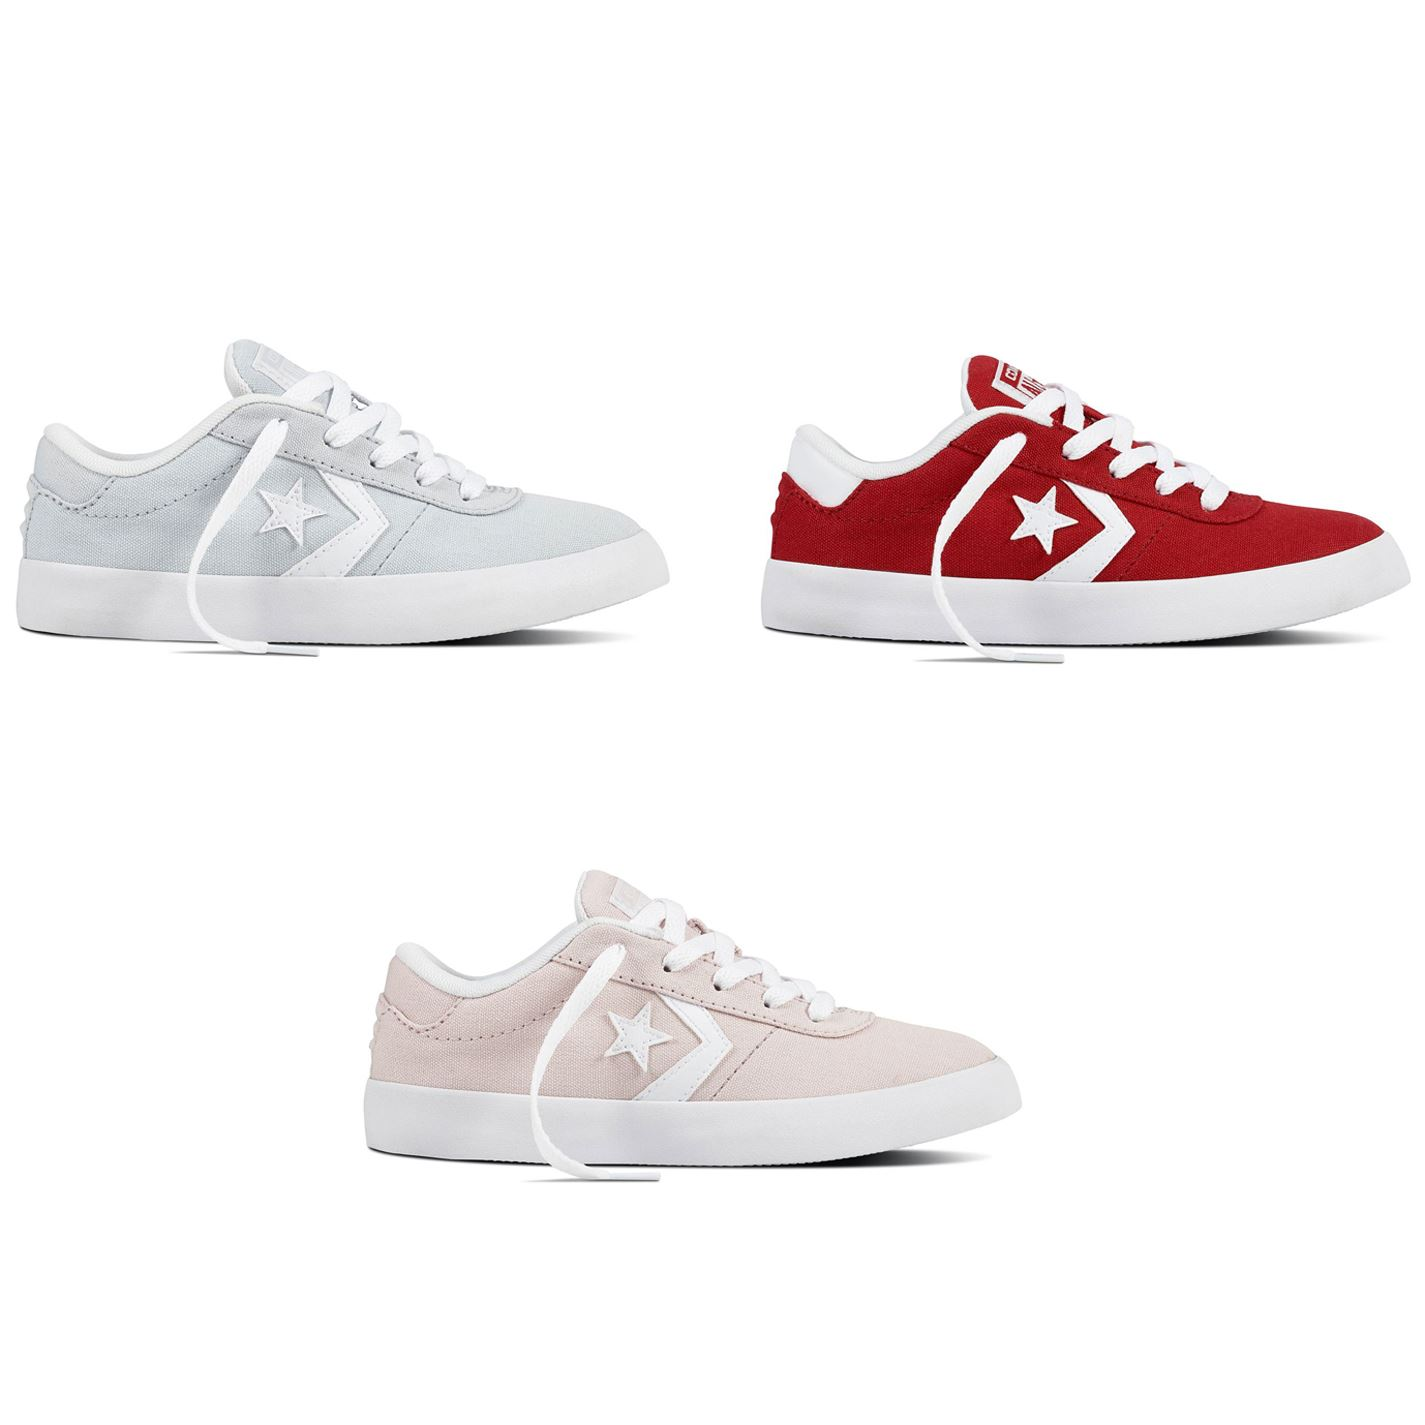 7e5b5959b86 Converse Point Star Trainers Girls Shoes Footwear Converse Point Star  Trainers Girls Shoes Footwear ...